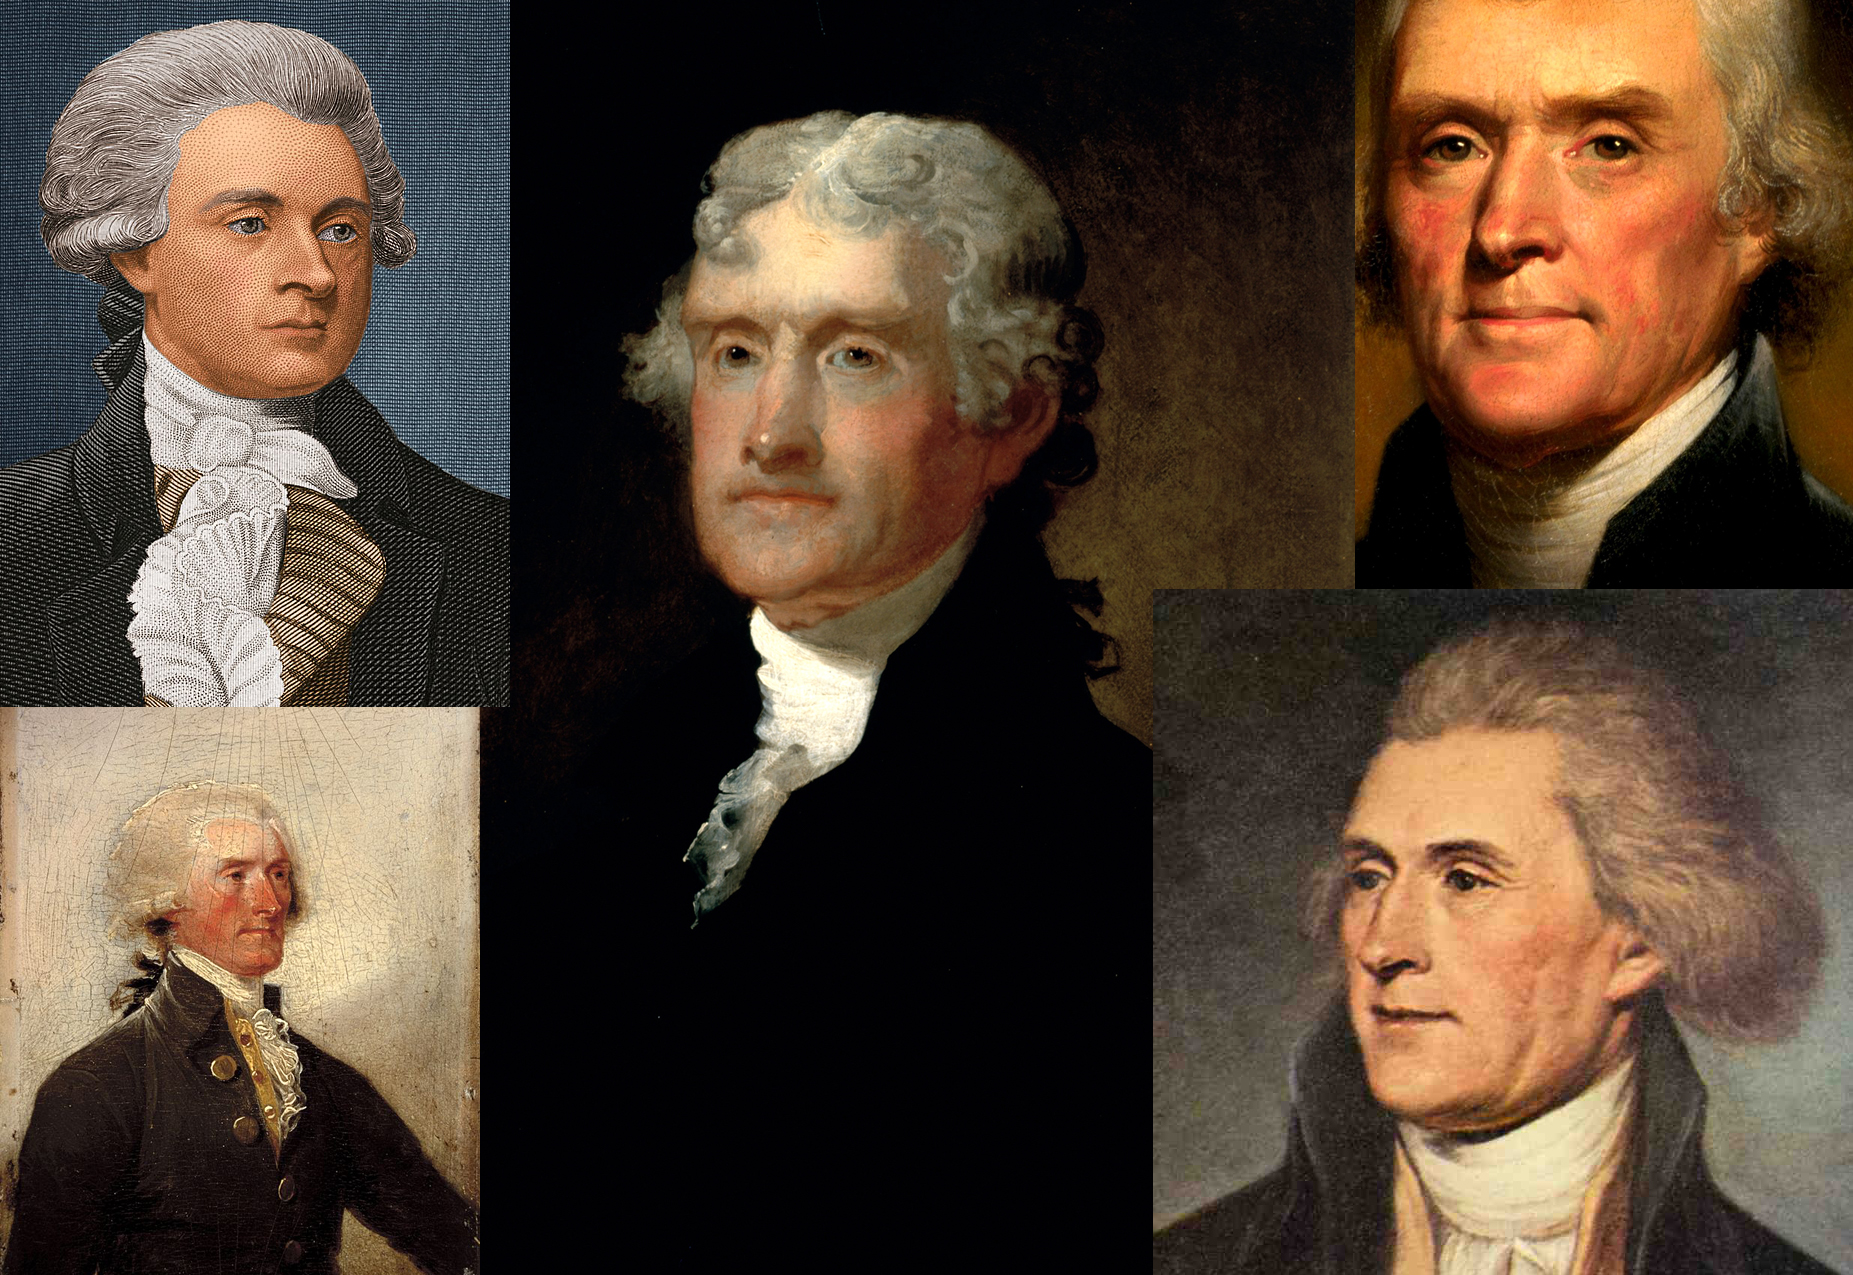 The many faces of Thomas Jefferson